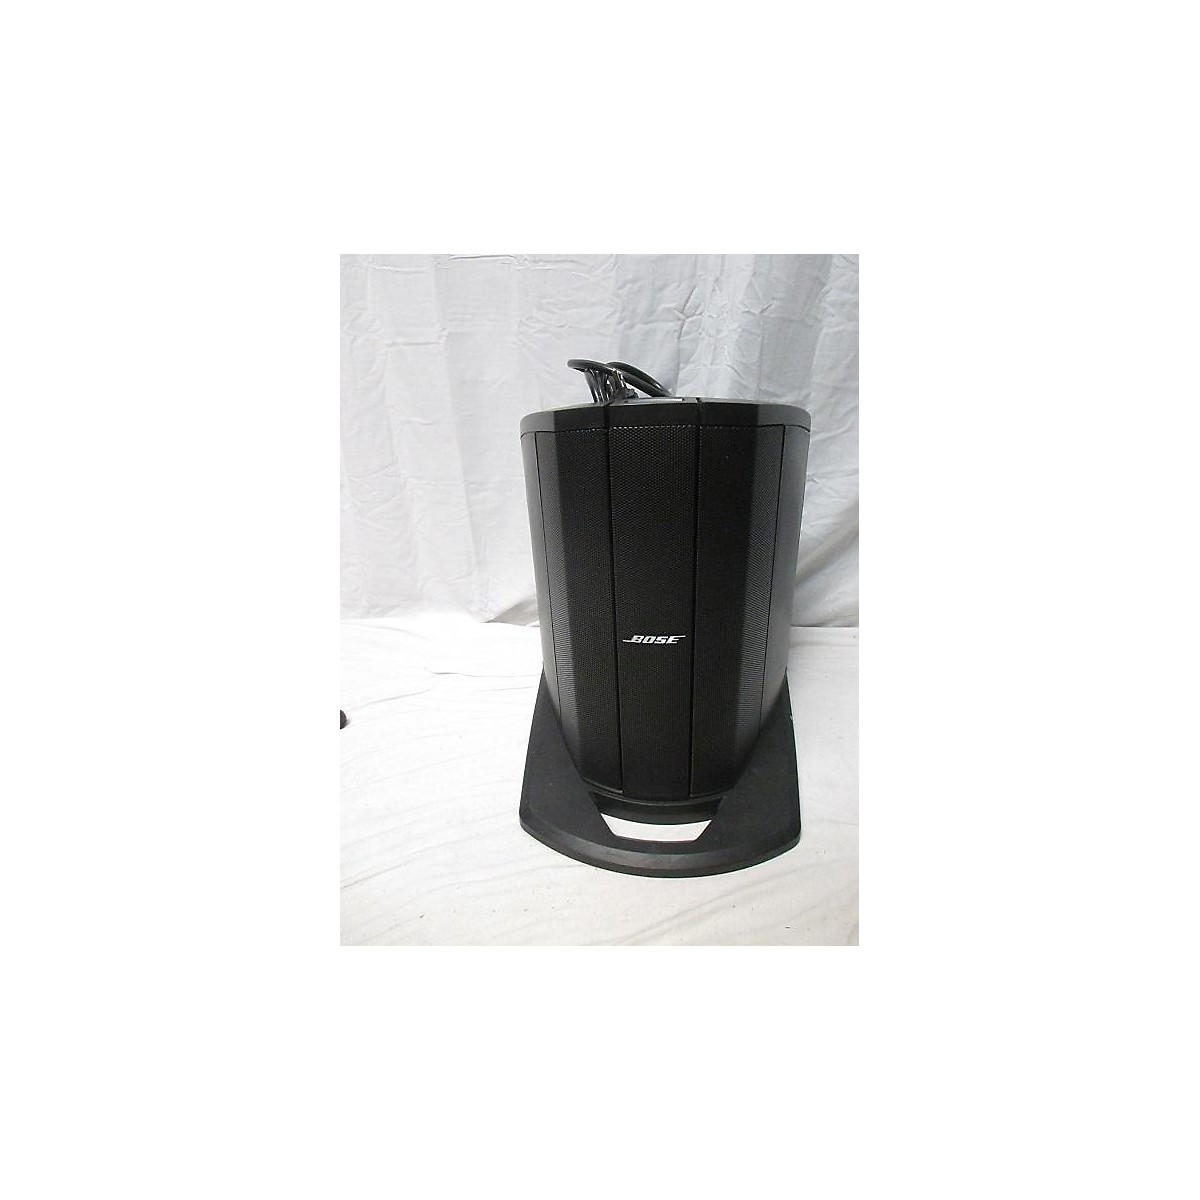 Bose ToneMatch L1 Compact Powered Speaker